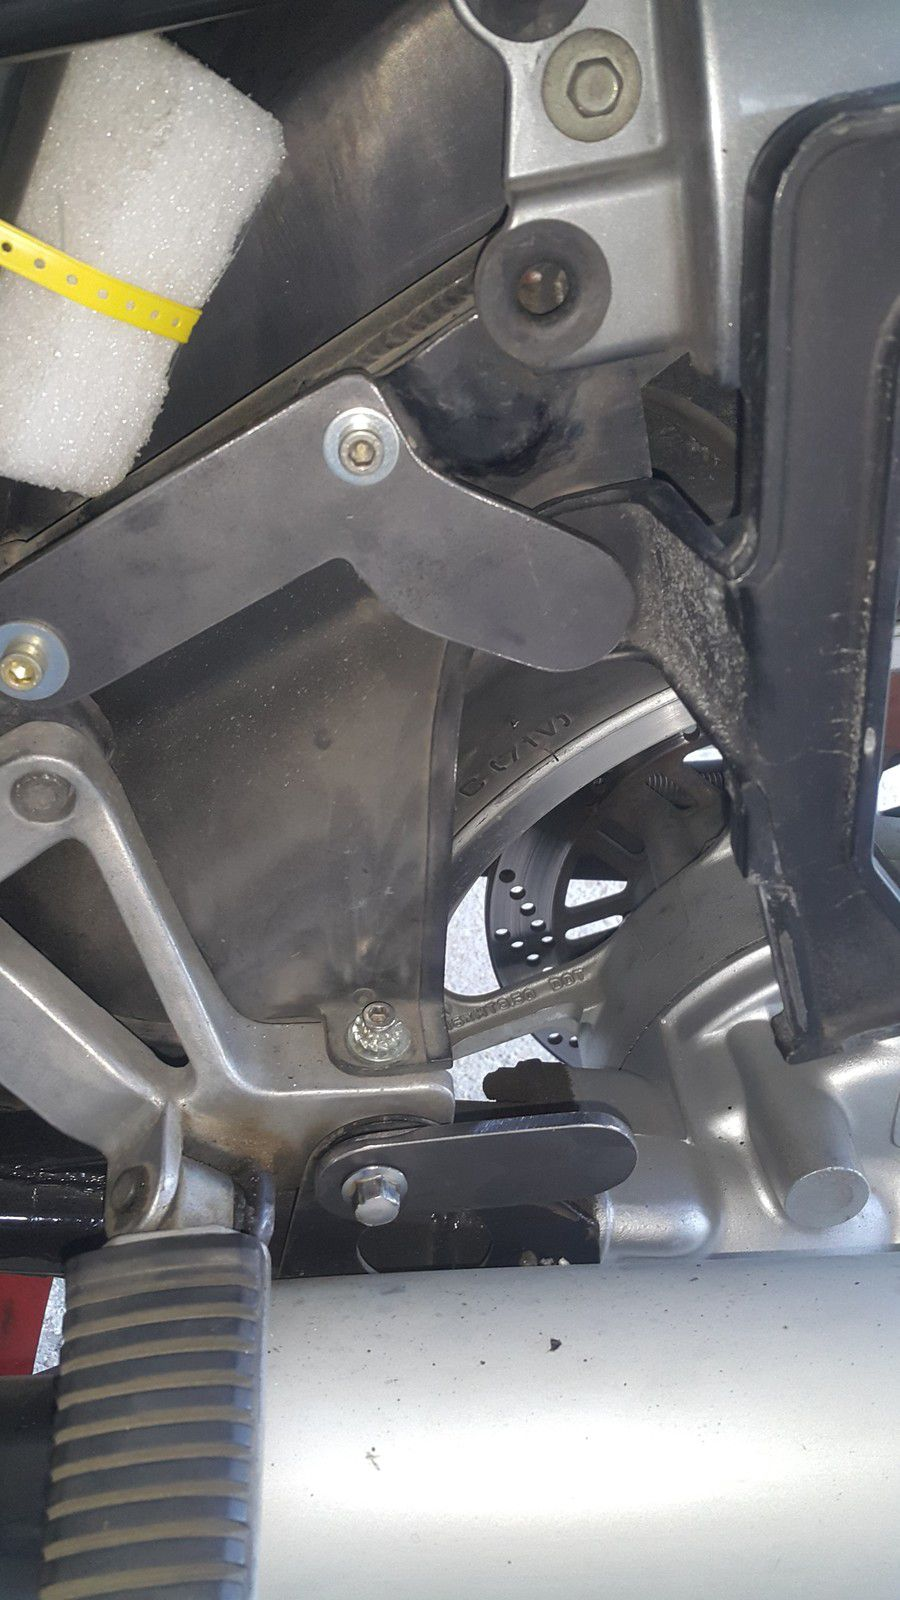 Protections chutes GTR 1000